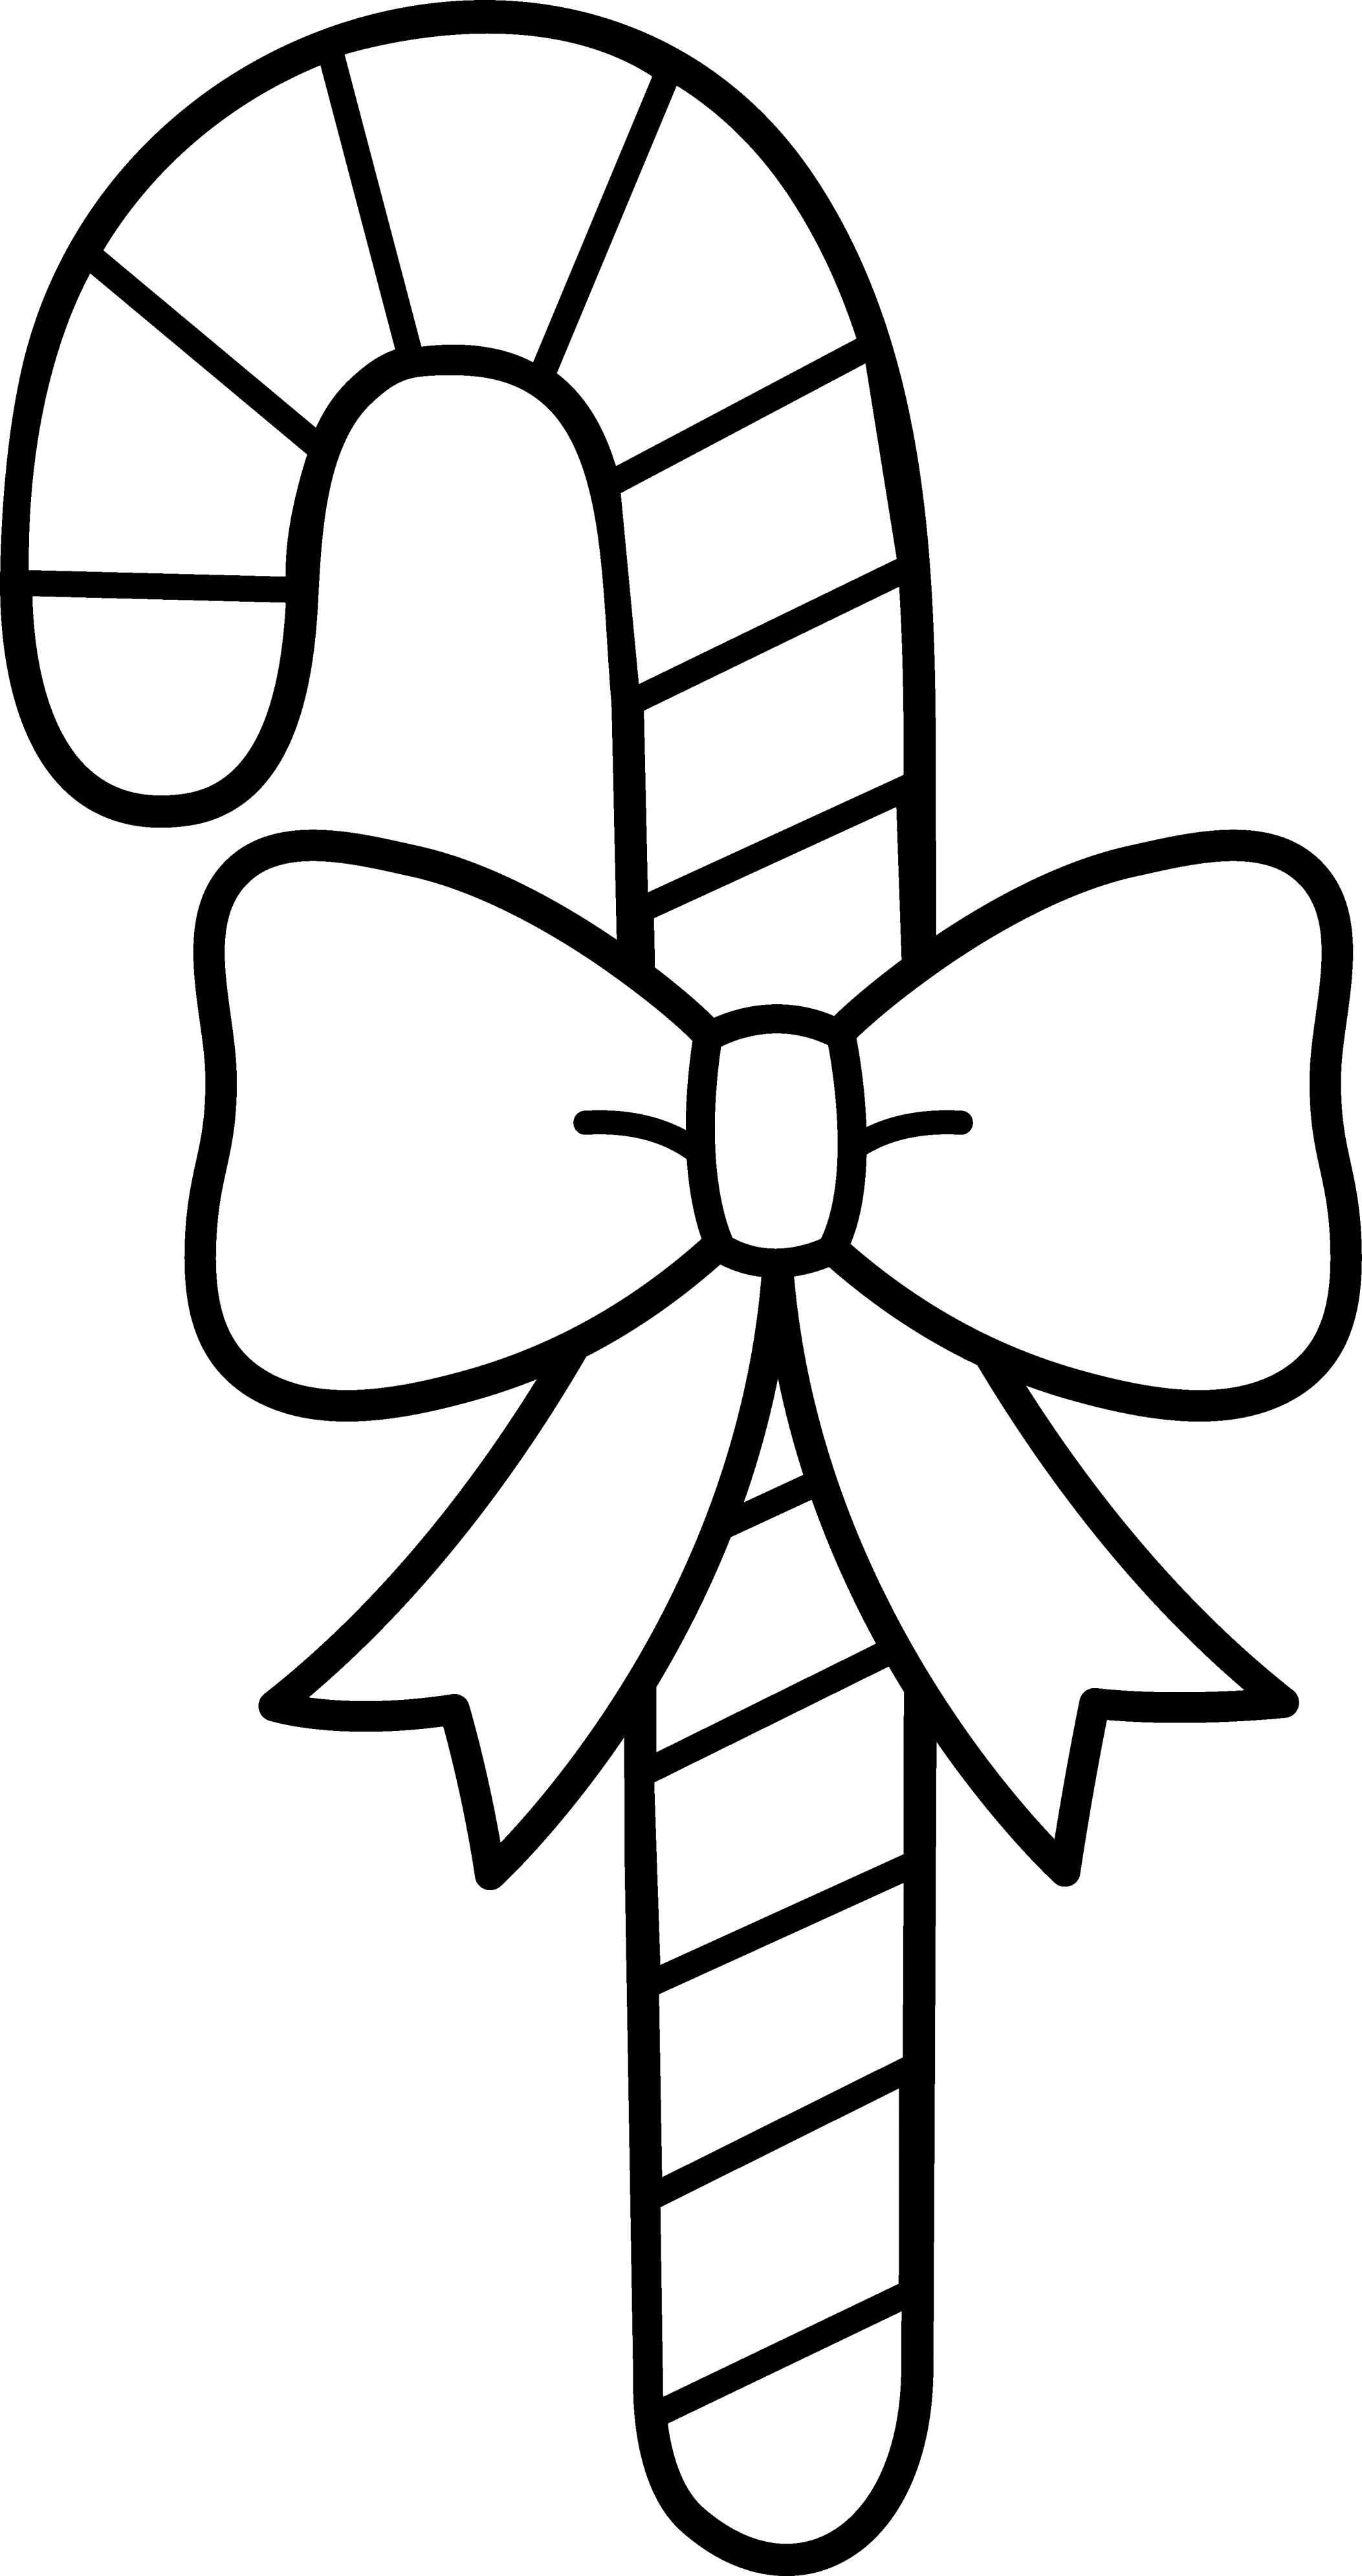 Christmas Coloring Pages Of Candy Canes With Free Printable